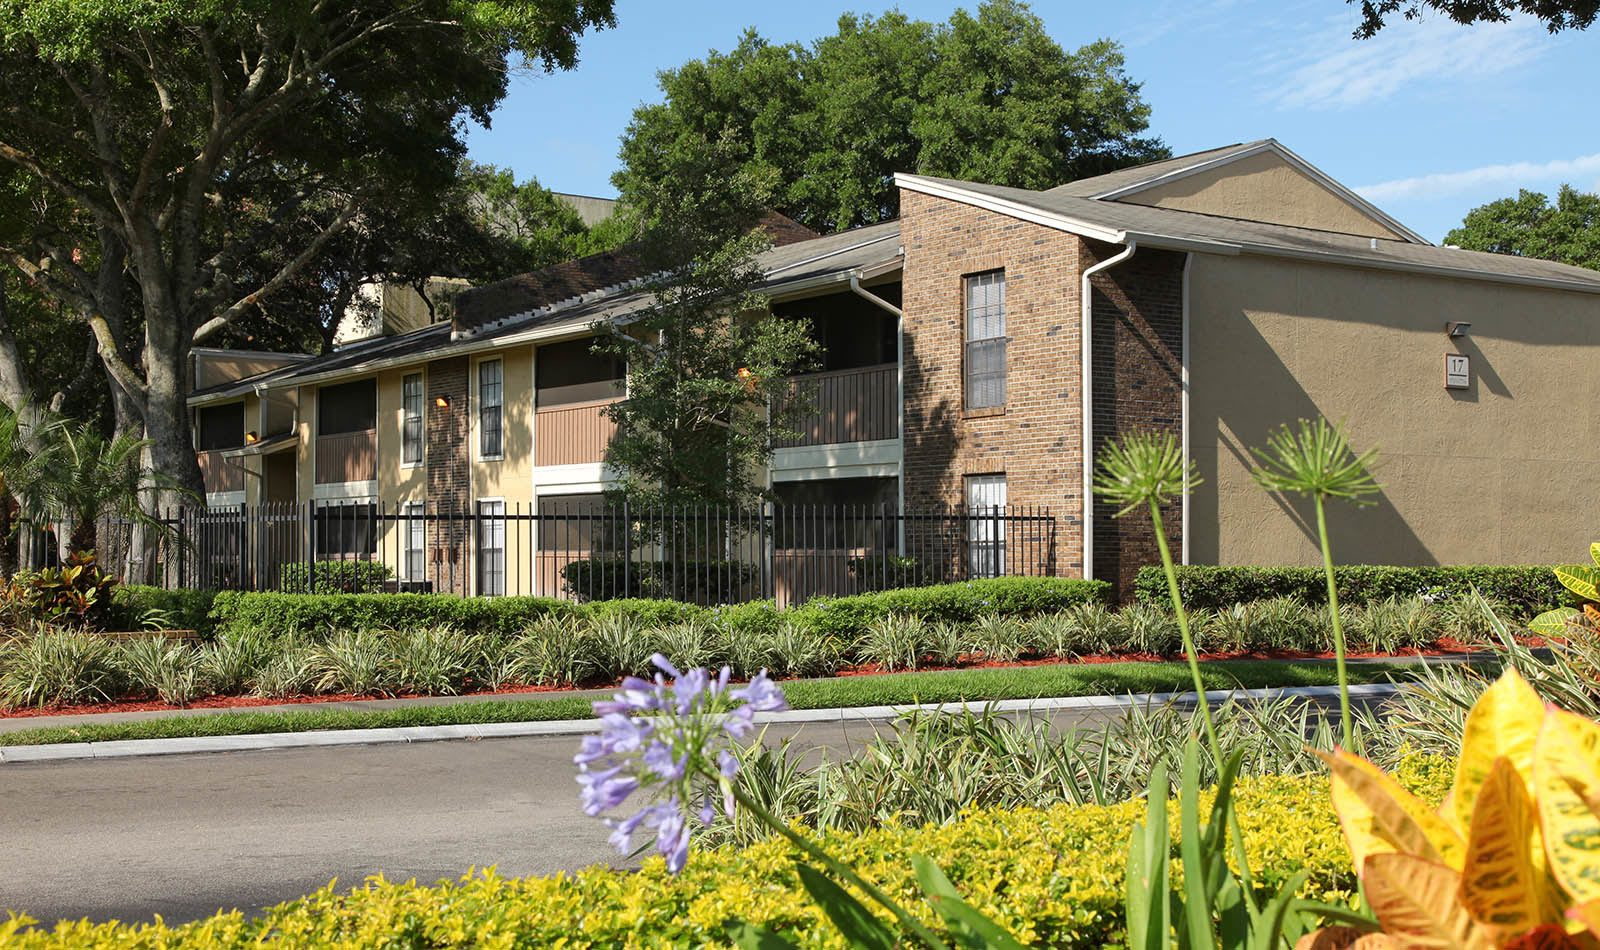 Exterior With Flowers at Legend Oaks Apartments in Tampa